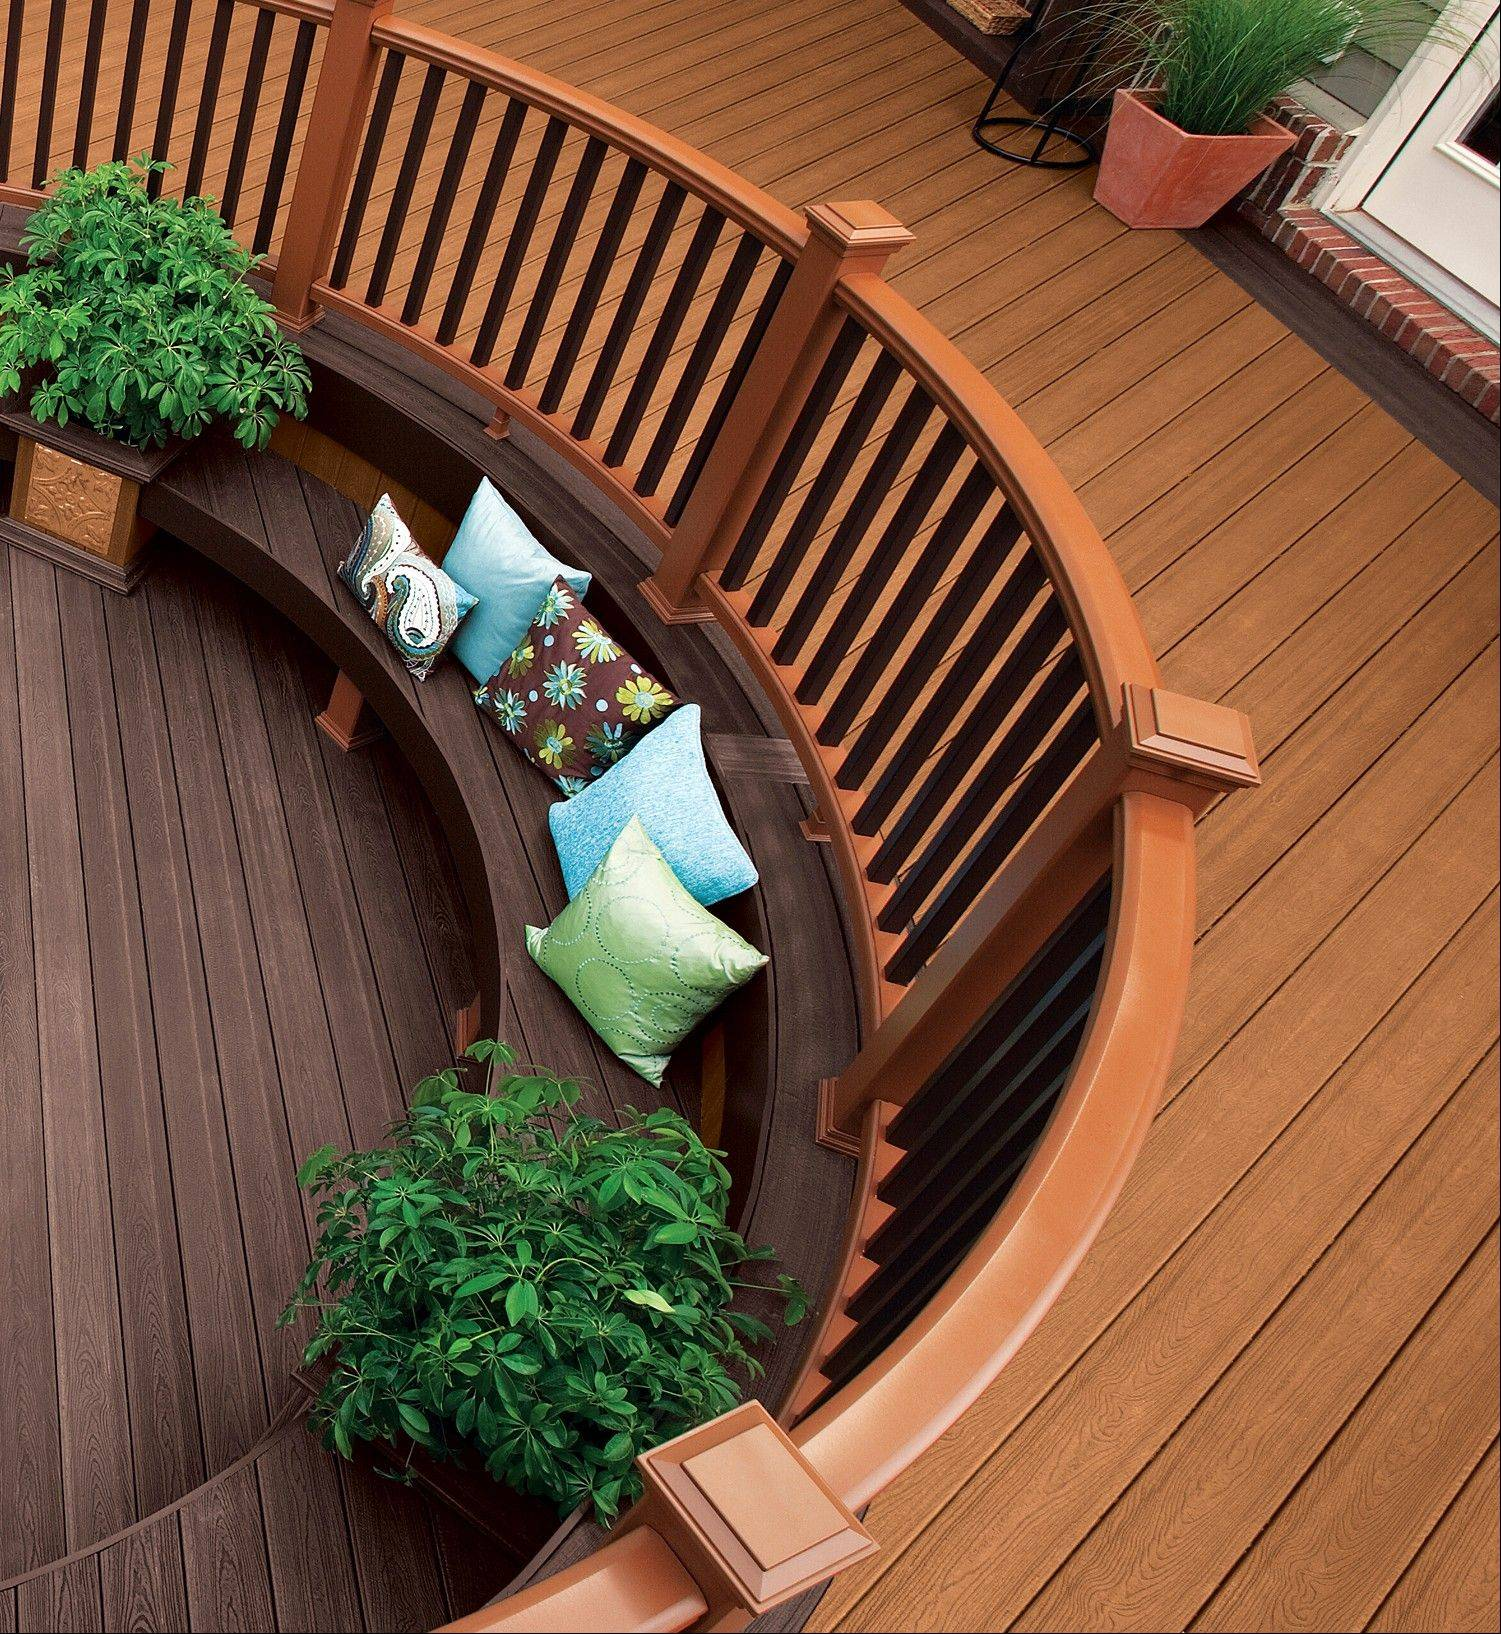 Wood decks are rapidly being replaced by plastic, aluminum and other man-made decking materials, which are prized for their easy maintenance.